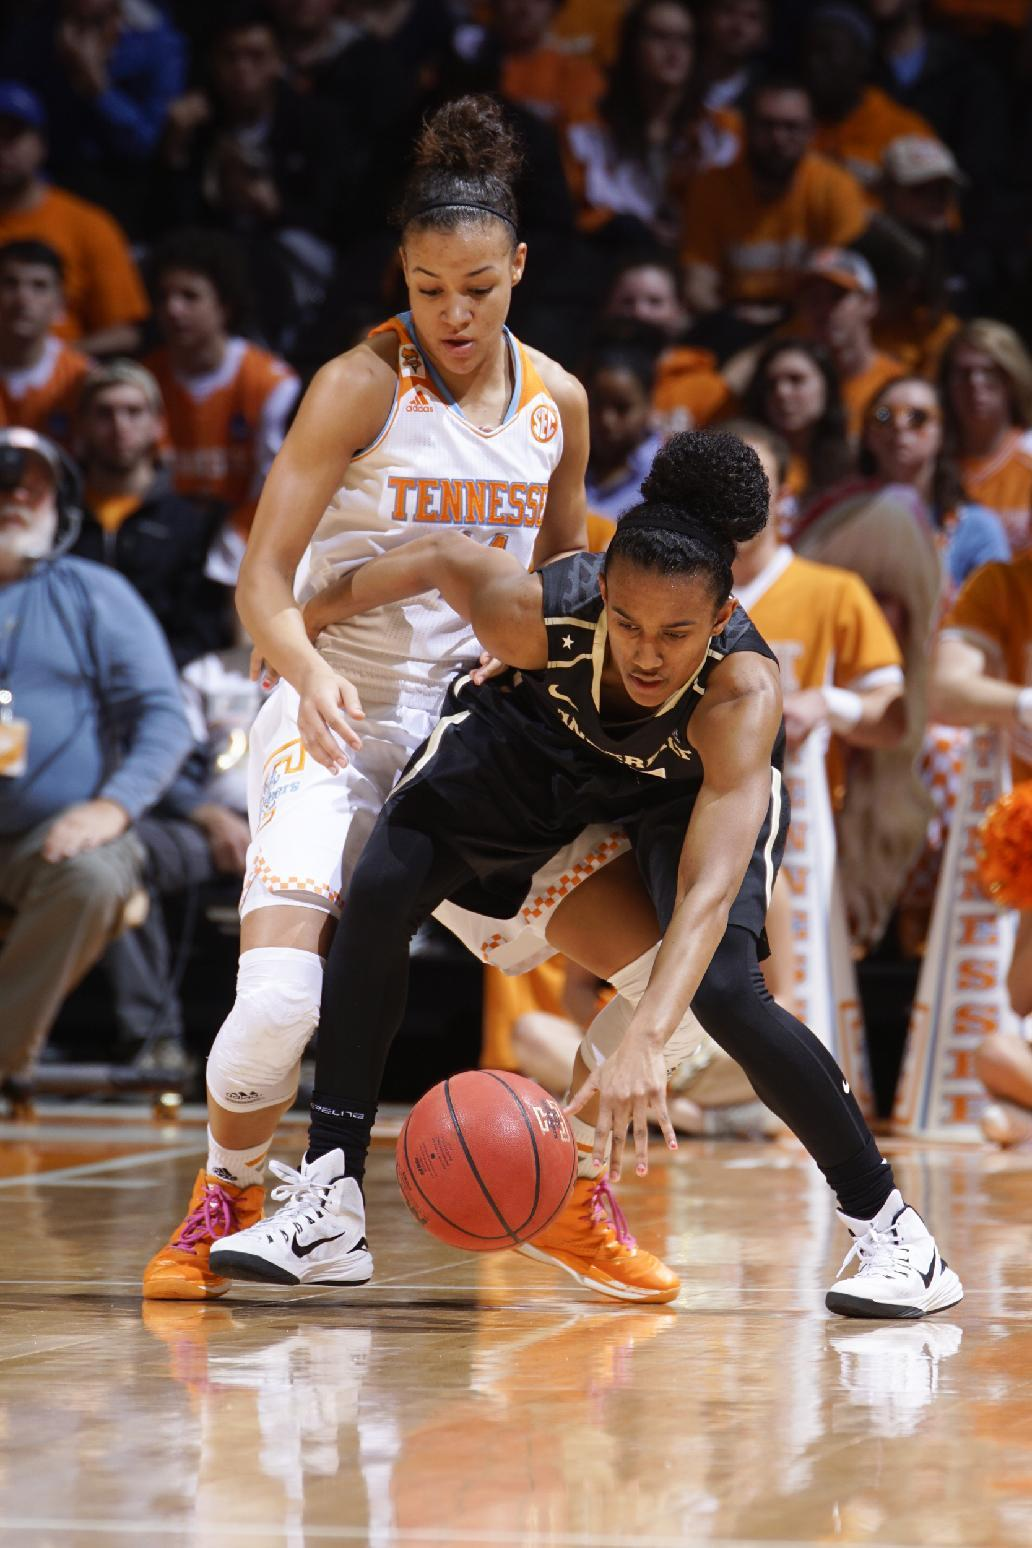 NCAA women's tournament could be missing some familiar names